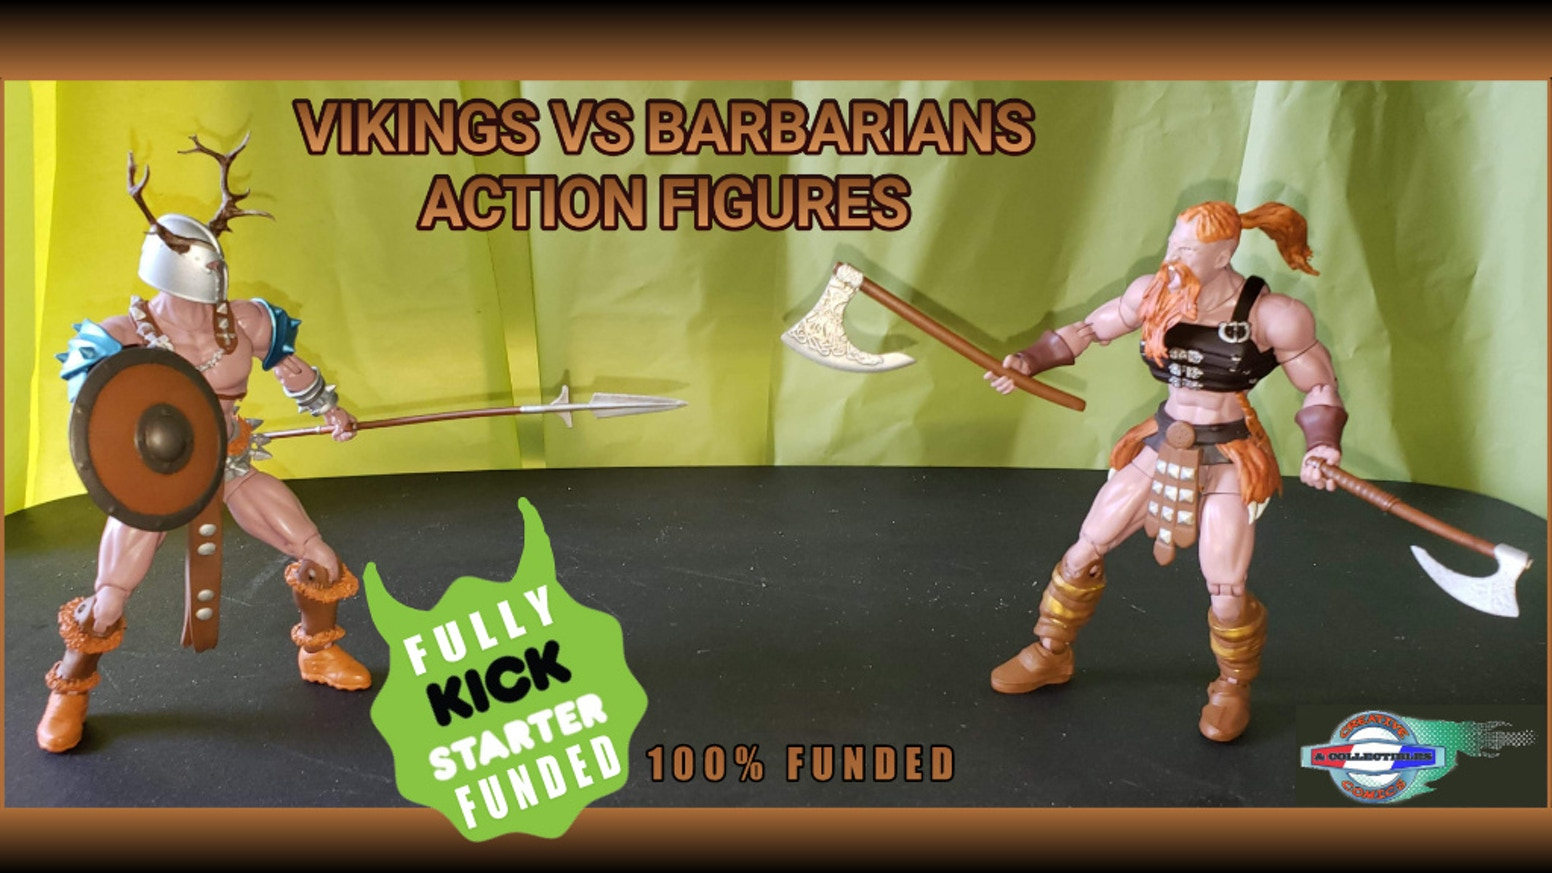 "Viking and Barbarian 6"" scale fully poseable collectible action figures, weapon packs, posters and more. We also Ship International!"